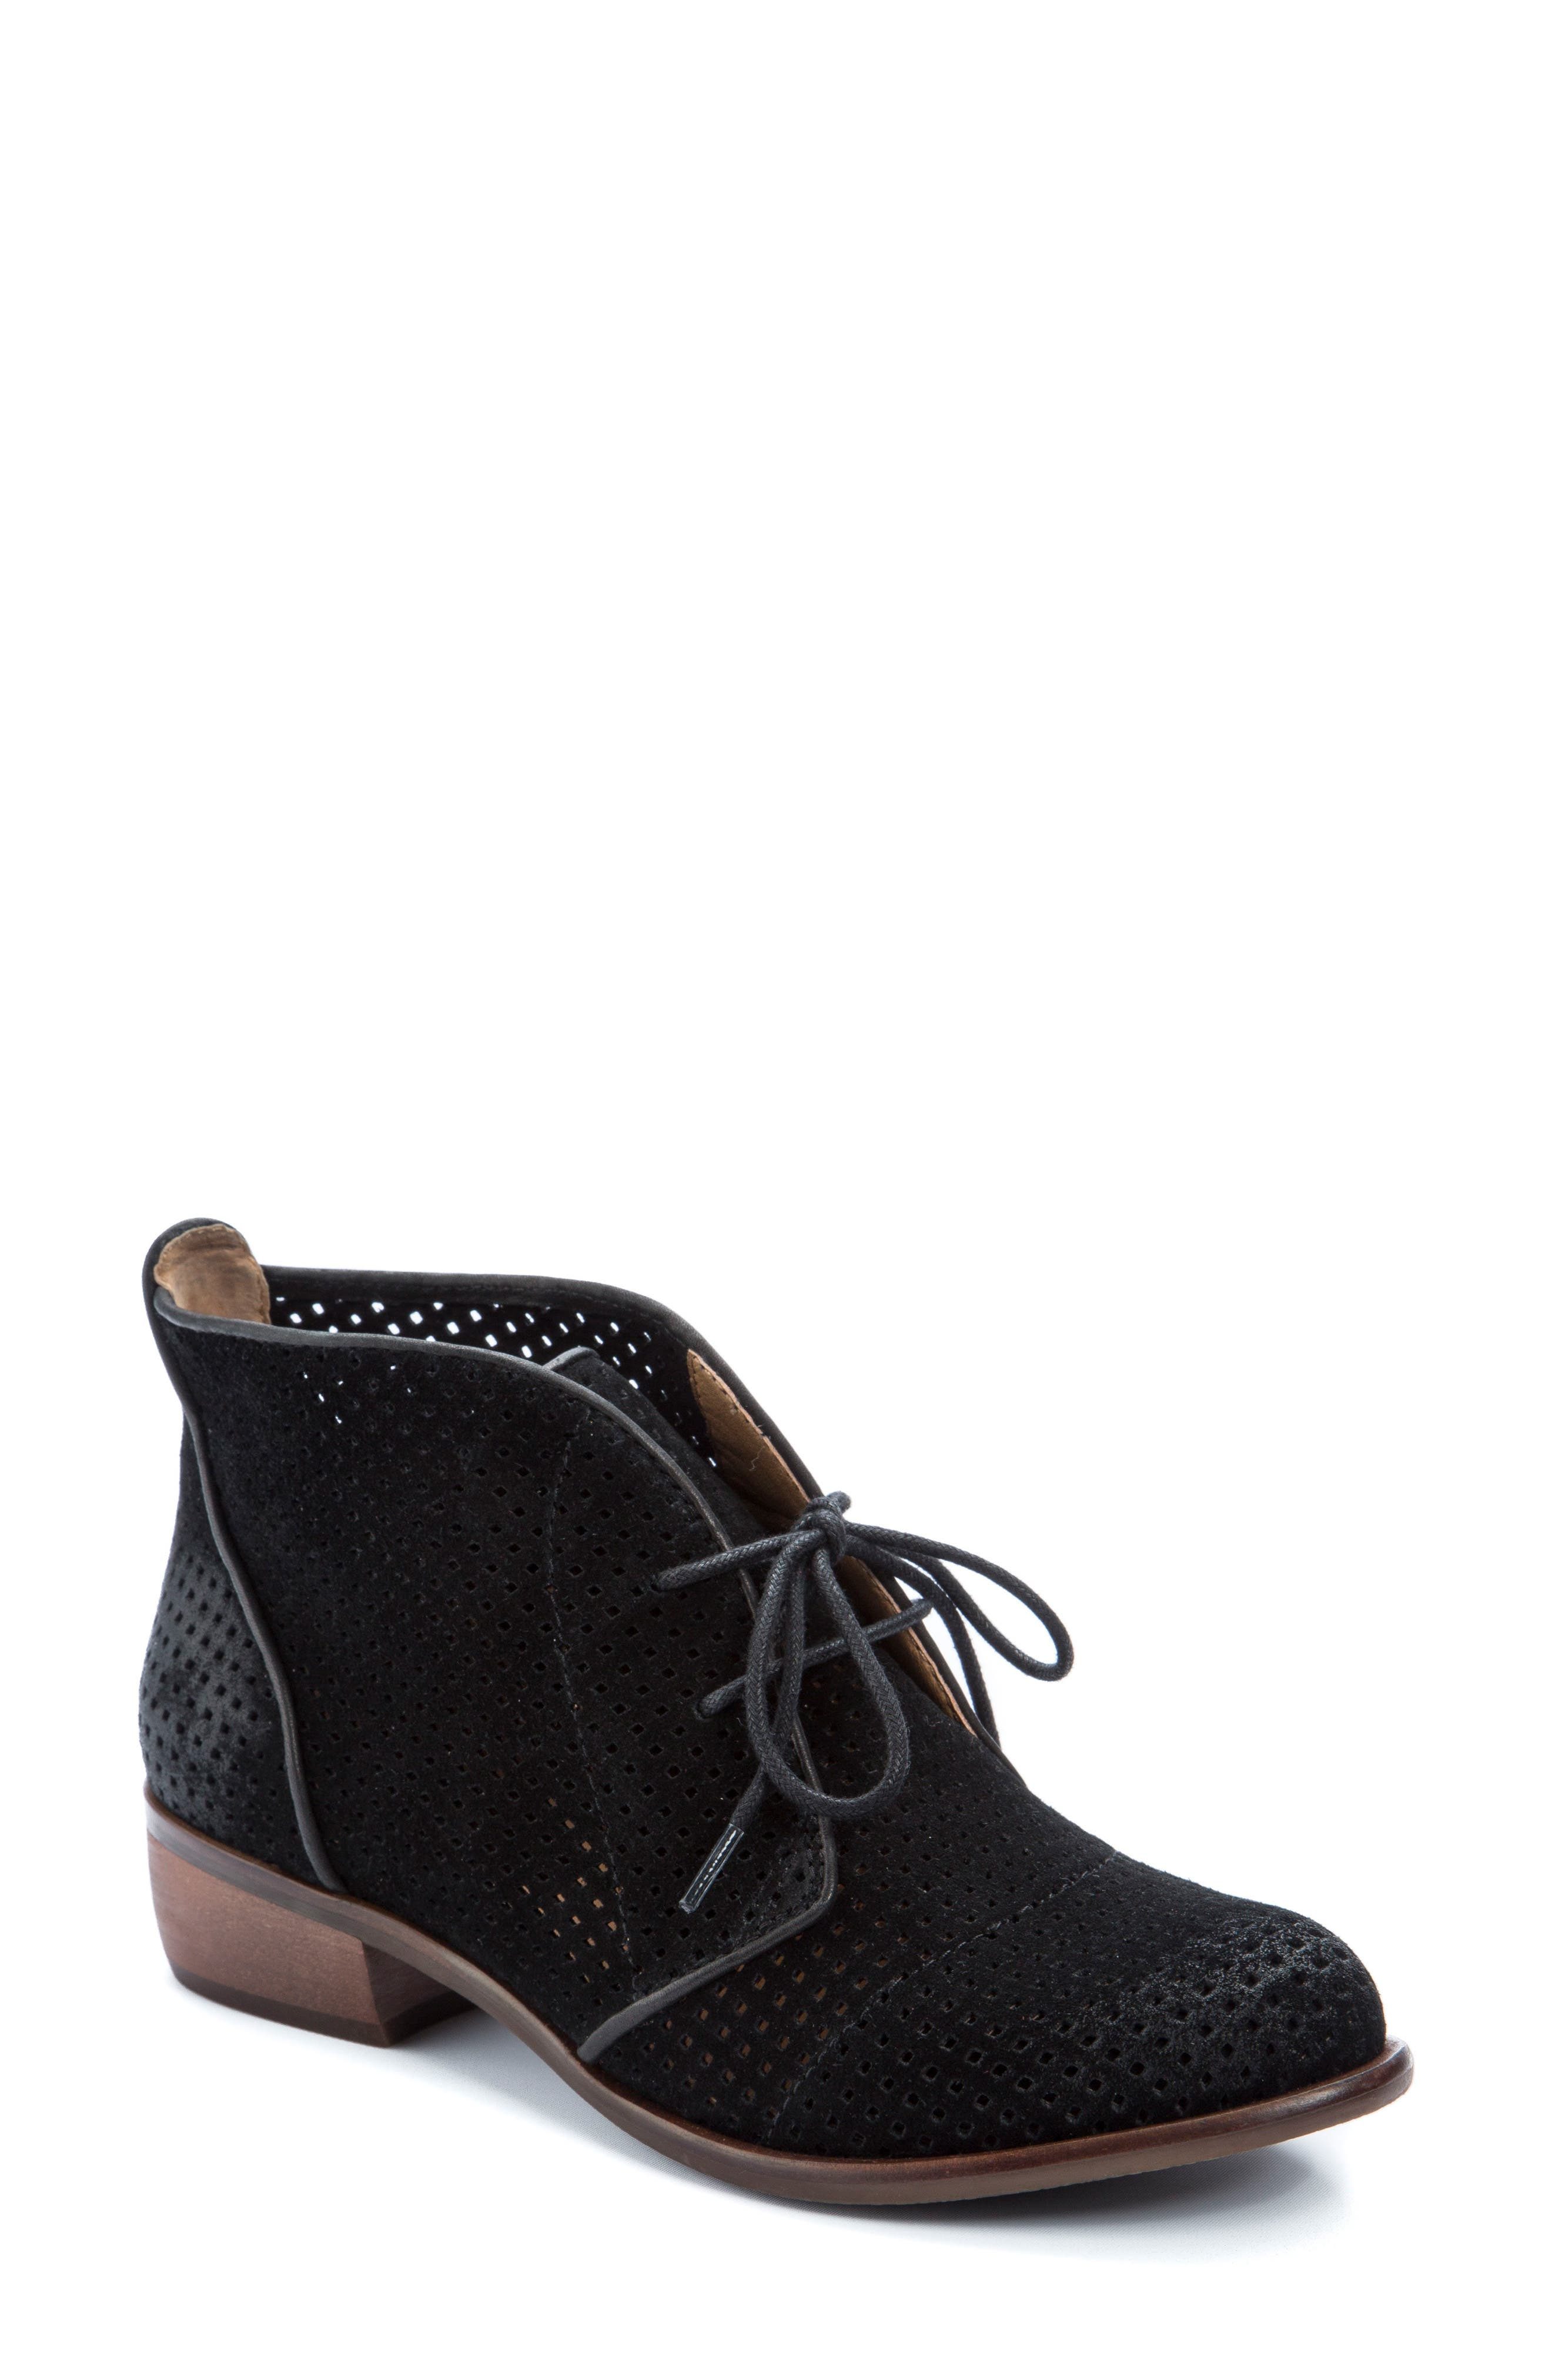 Main Image - Latigo Isaac Lace-Up Bootie (Women)